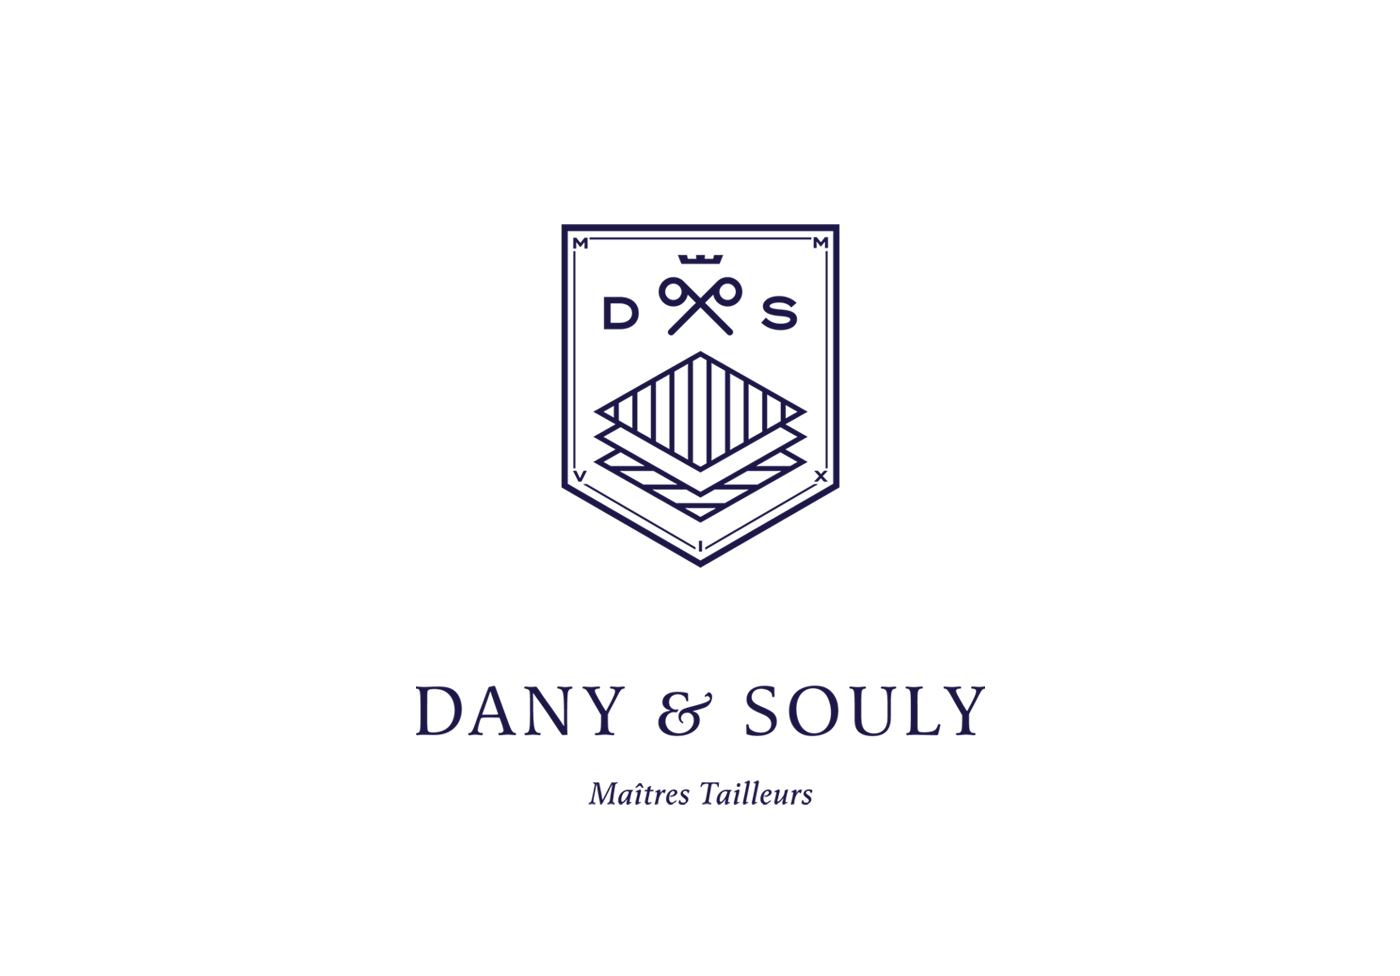 DanySouly-Tailors-1